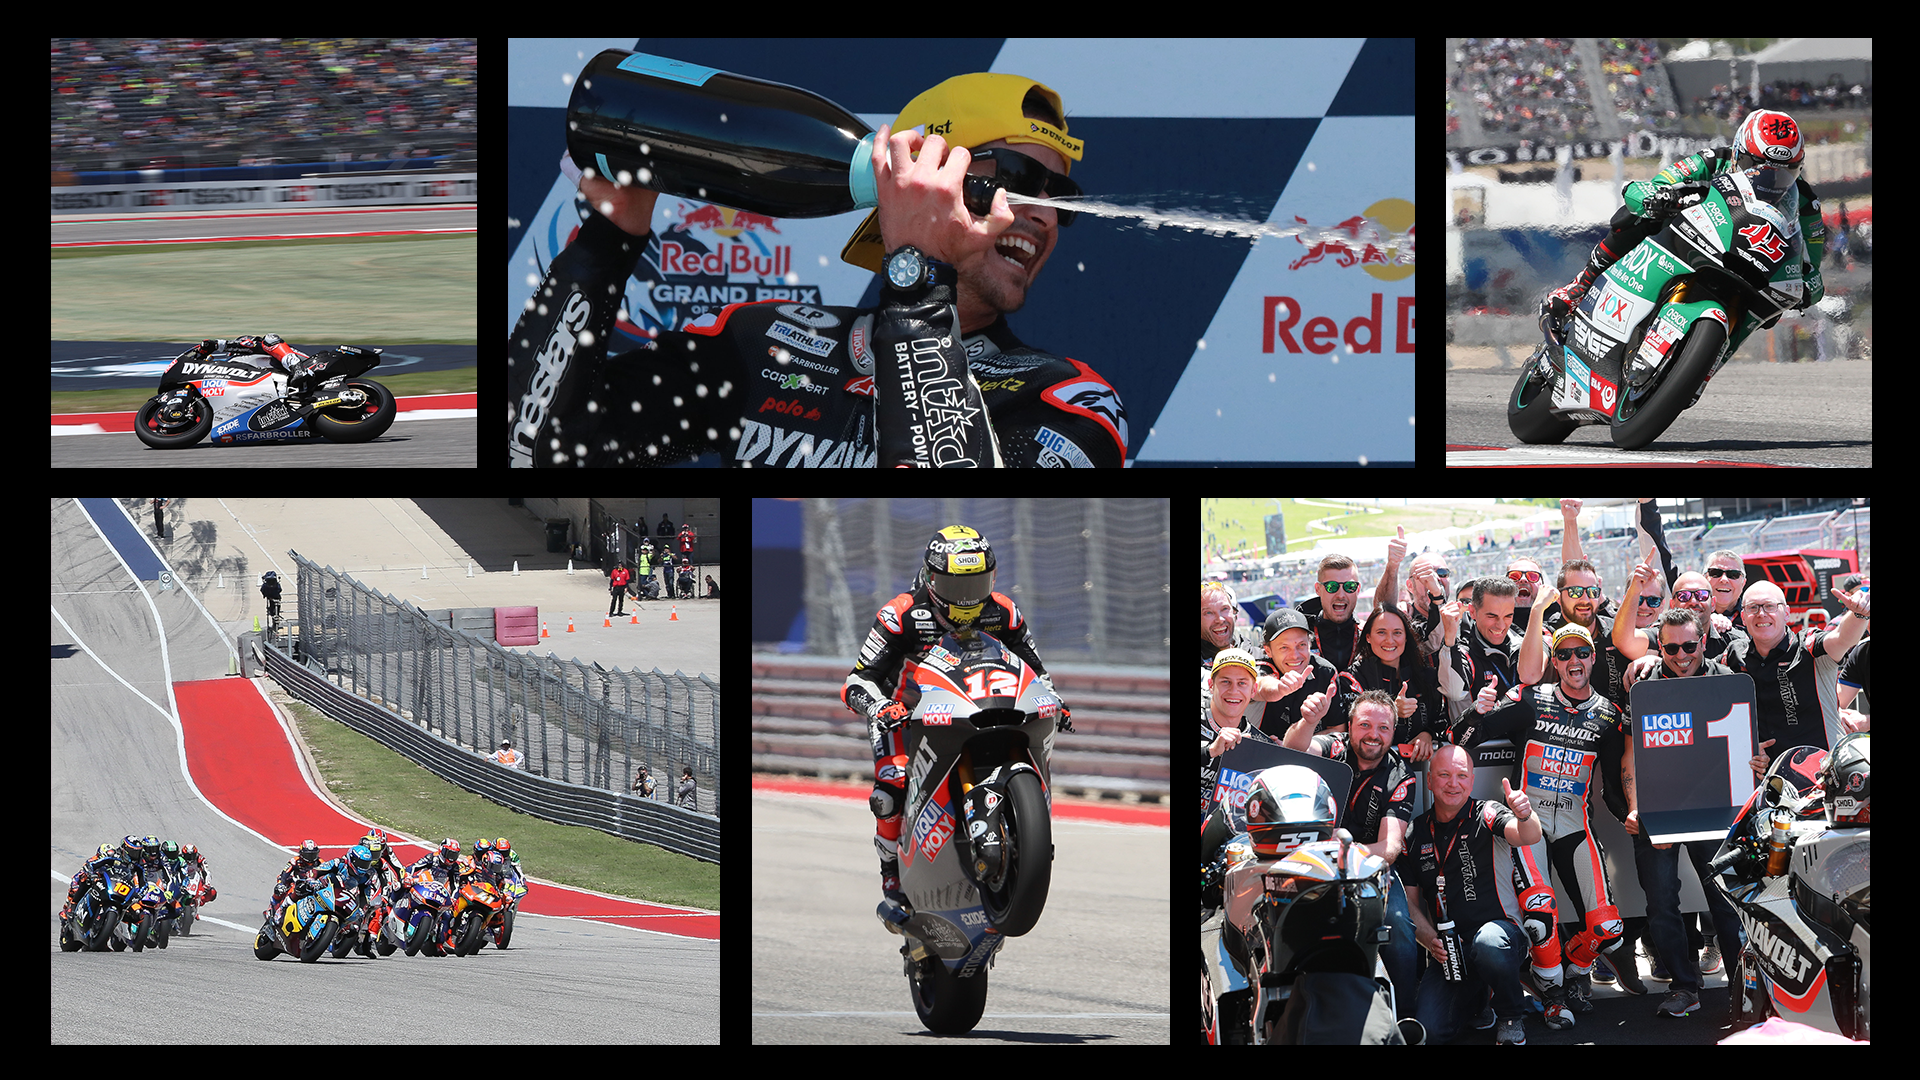 Highlights from round 3 of the 2019 Moto2 championship in Texas featuring race winner Thomas Luthi